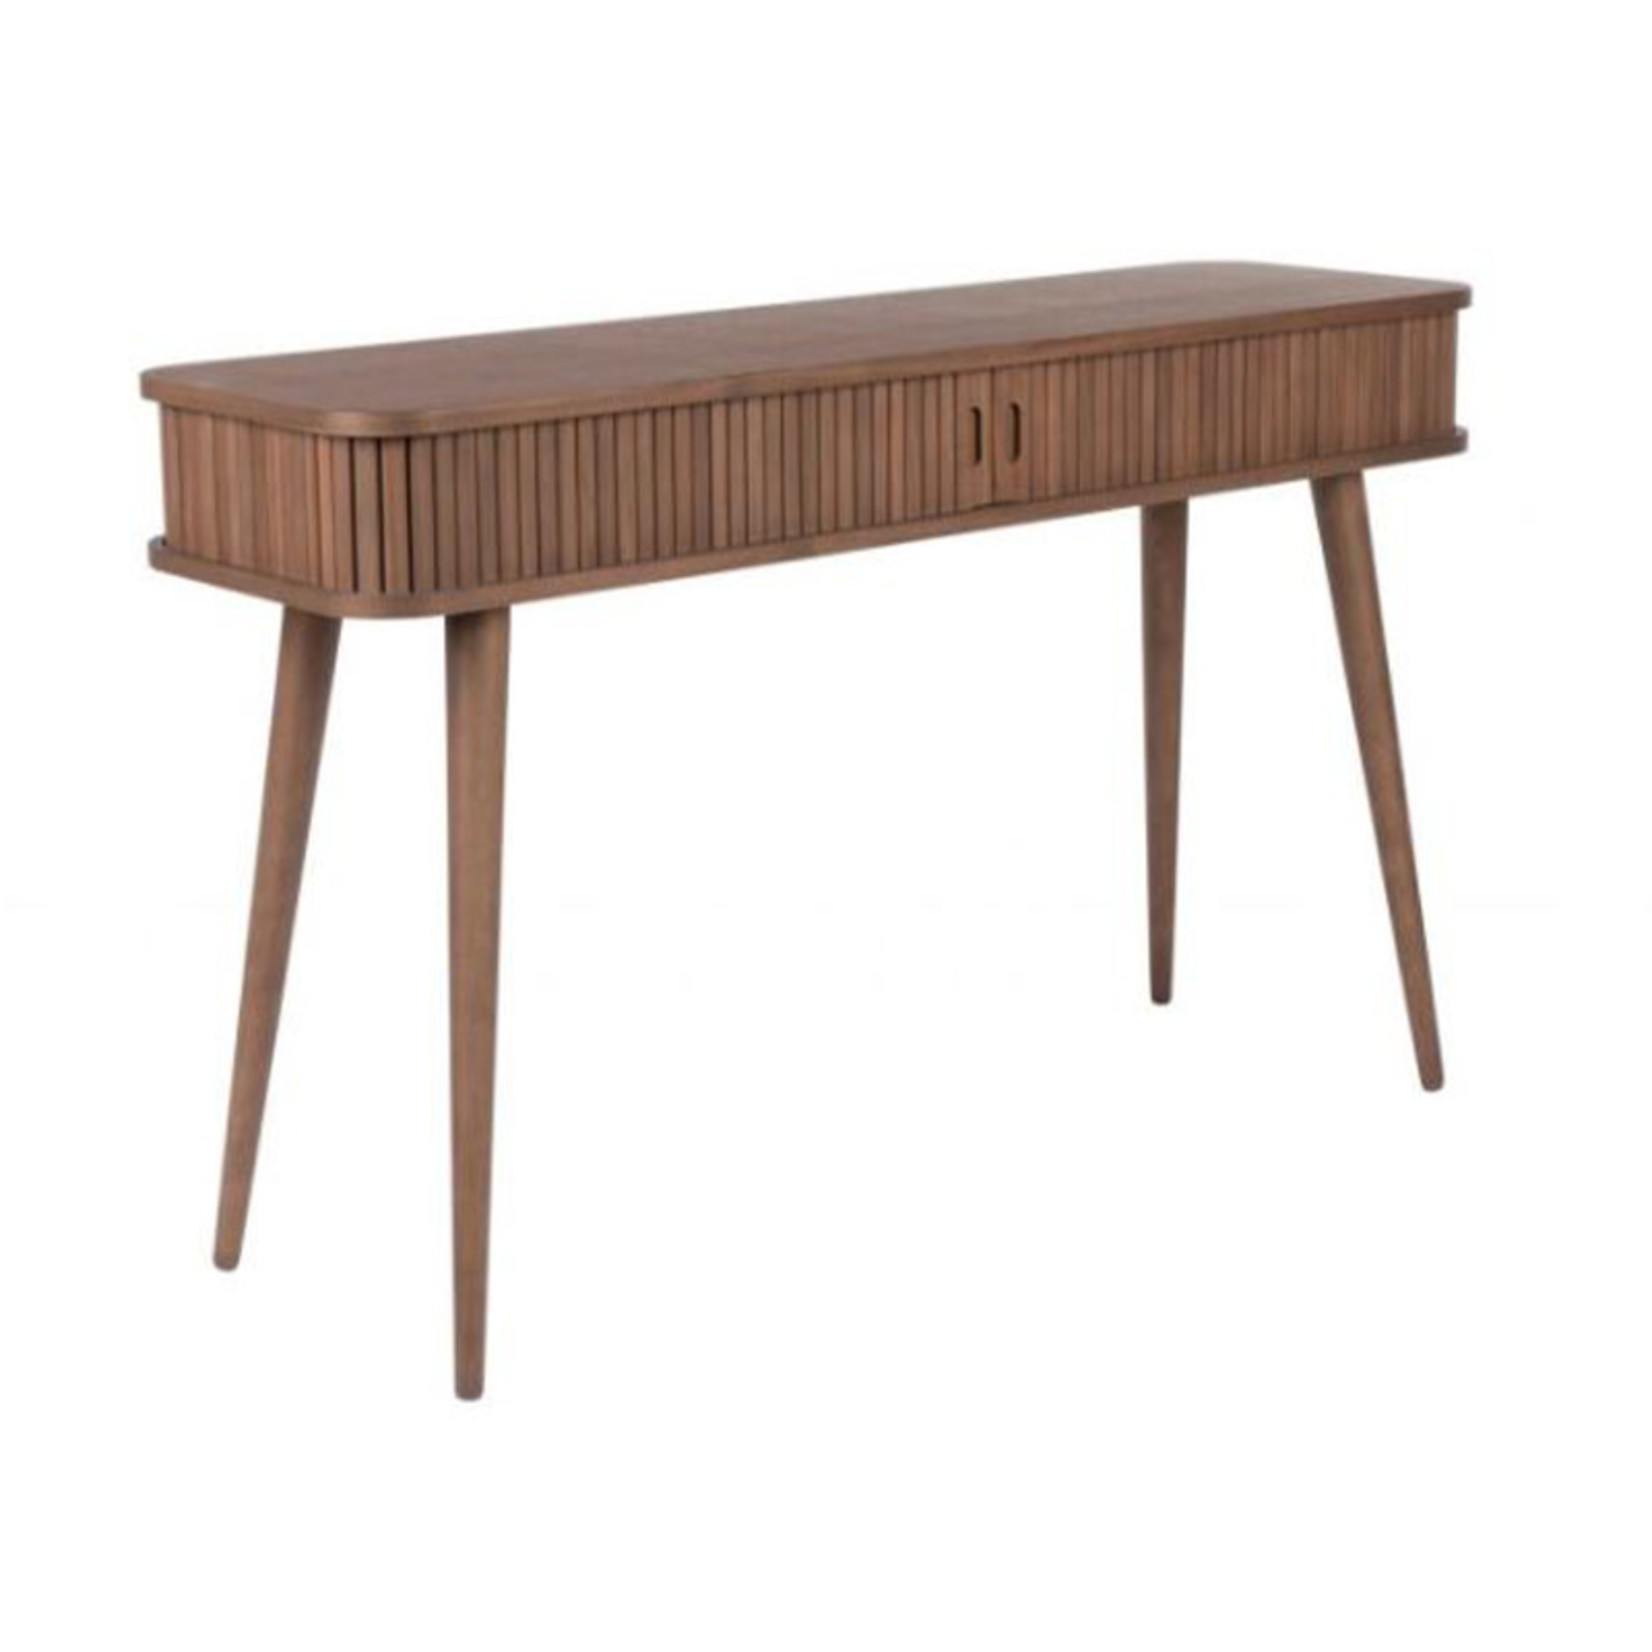 ZUIVER BV Barbier Console